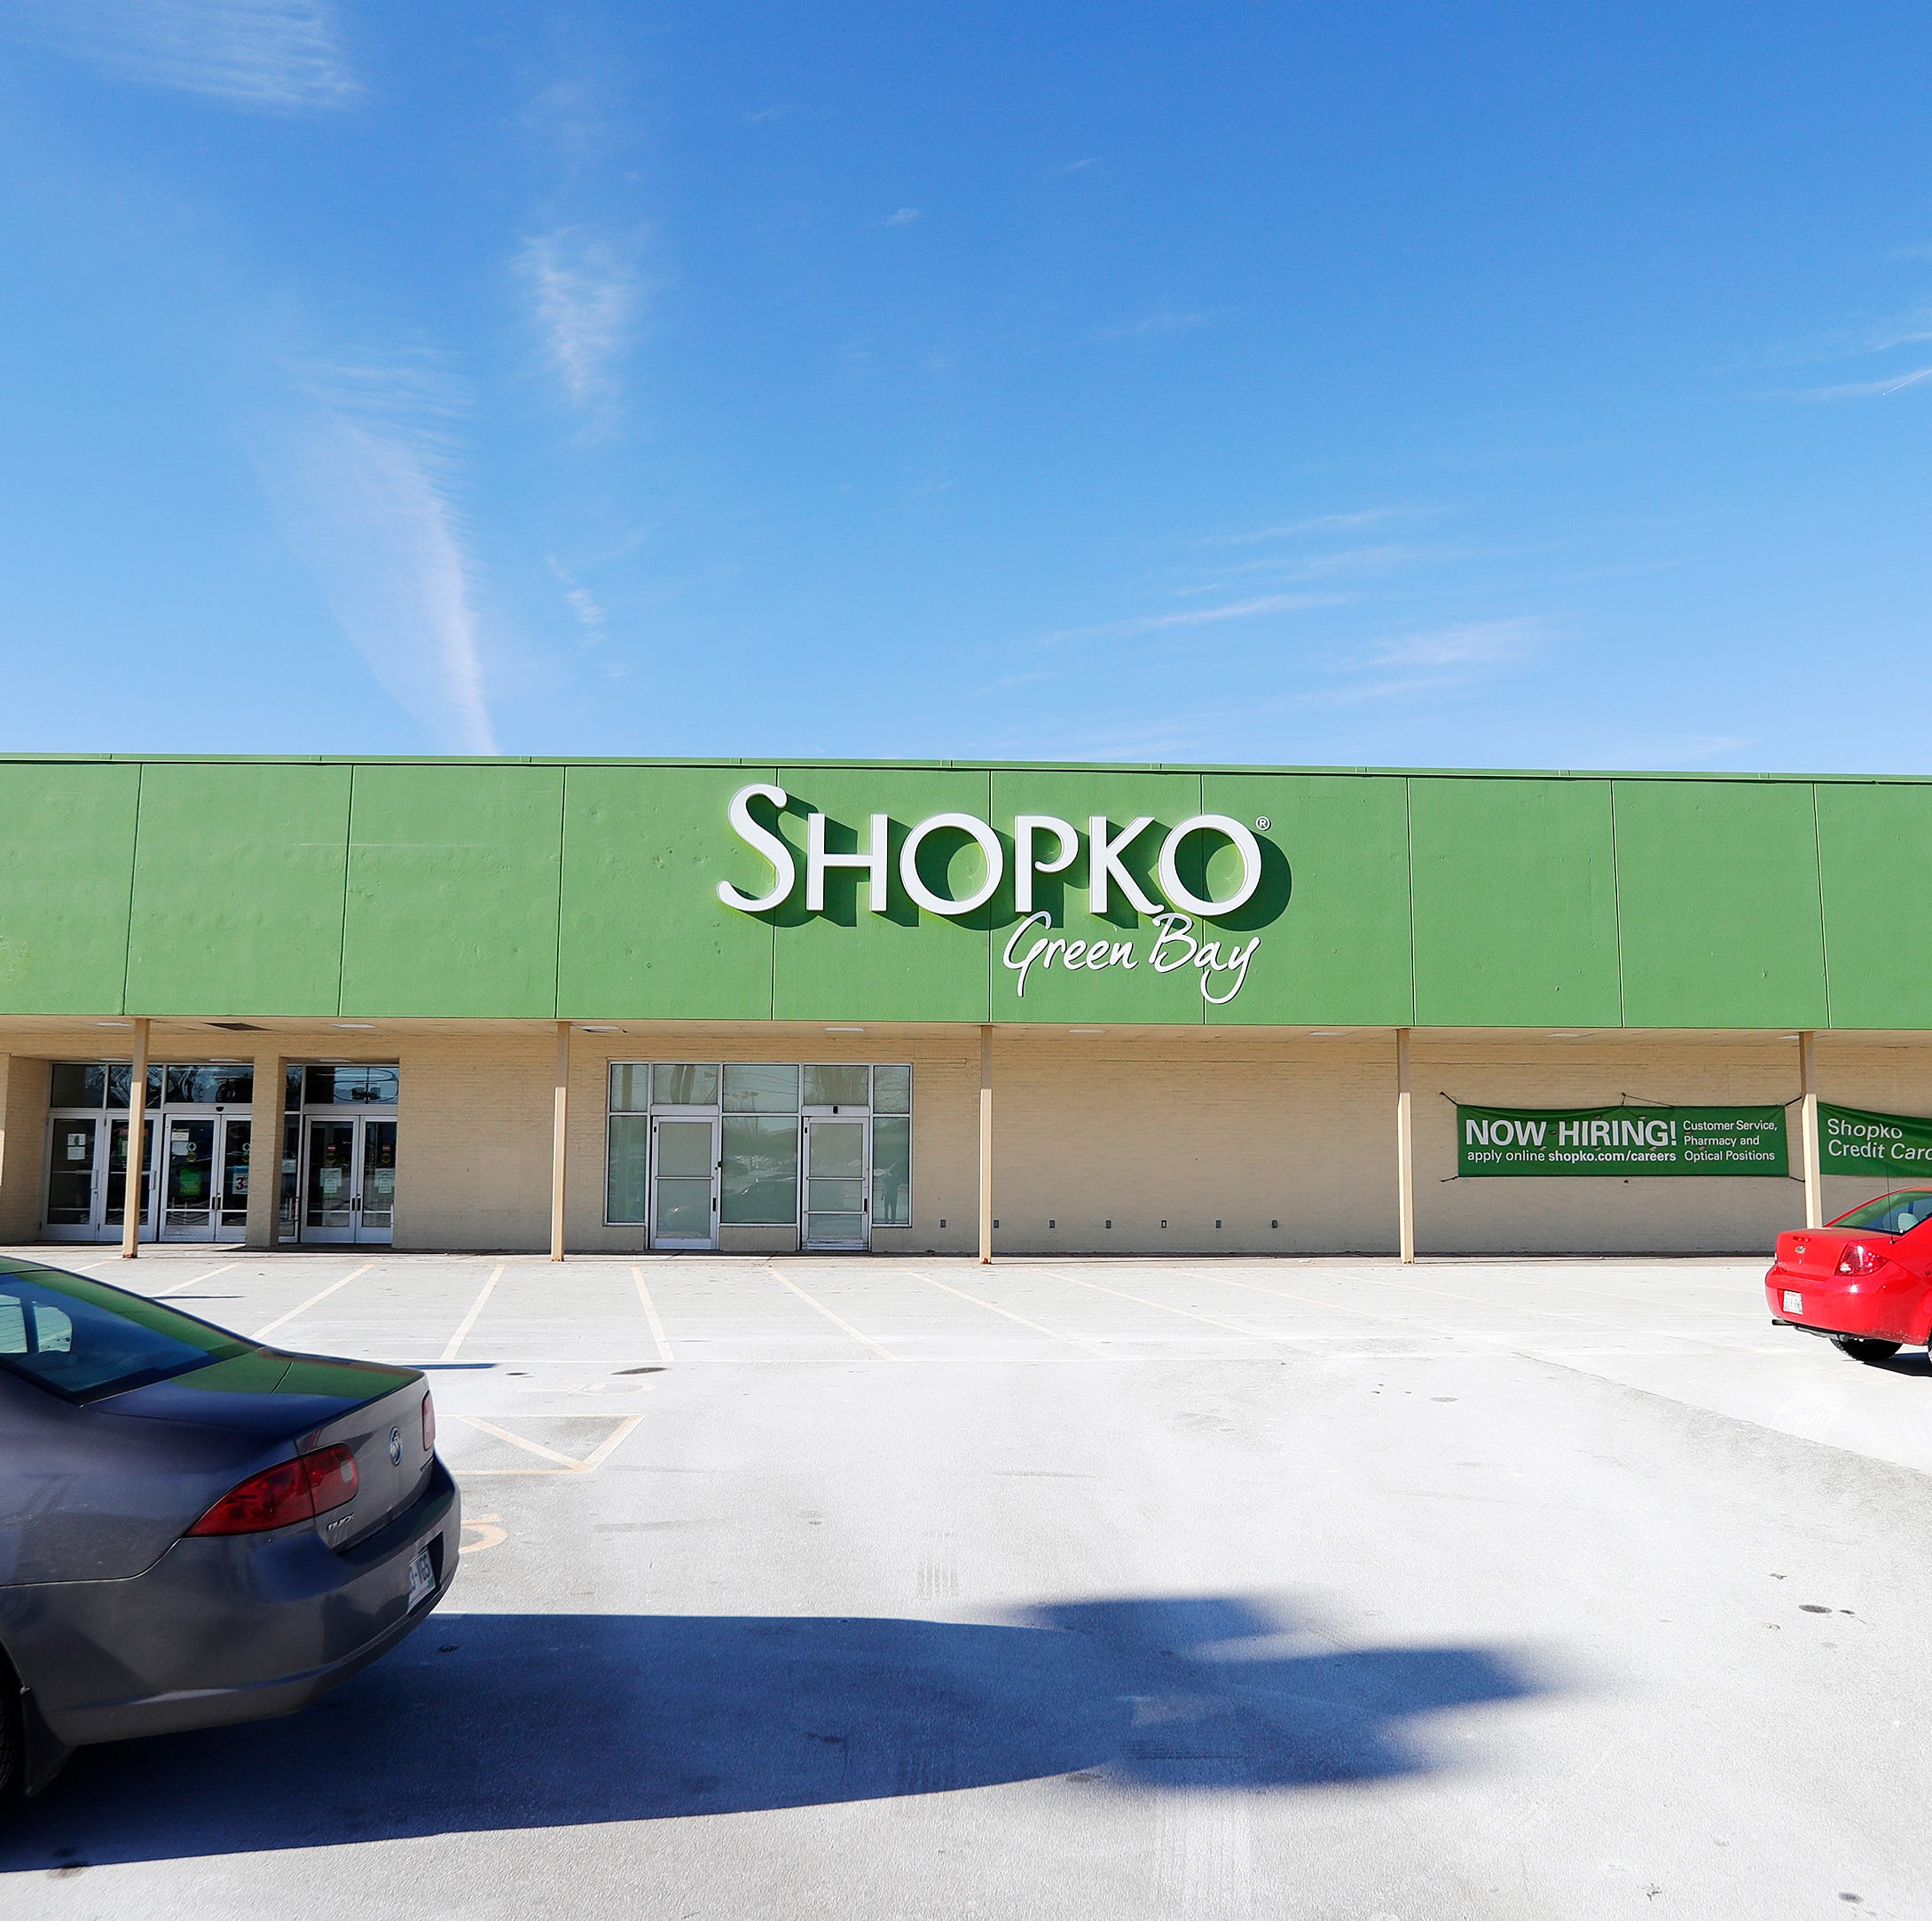 Too pricey? Where else will you shop? A look at reader responses to our Shopko survey